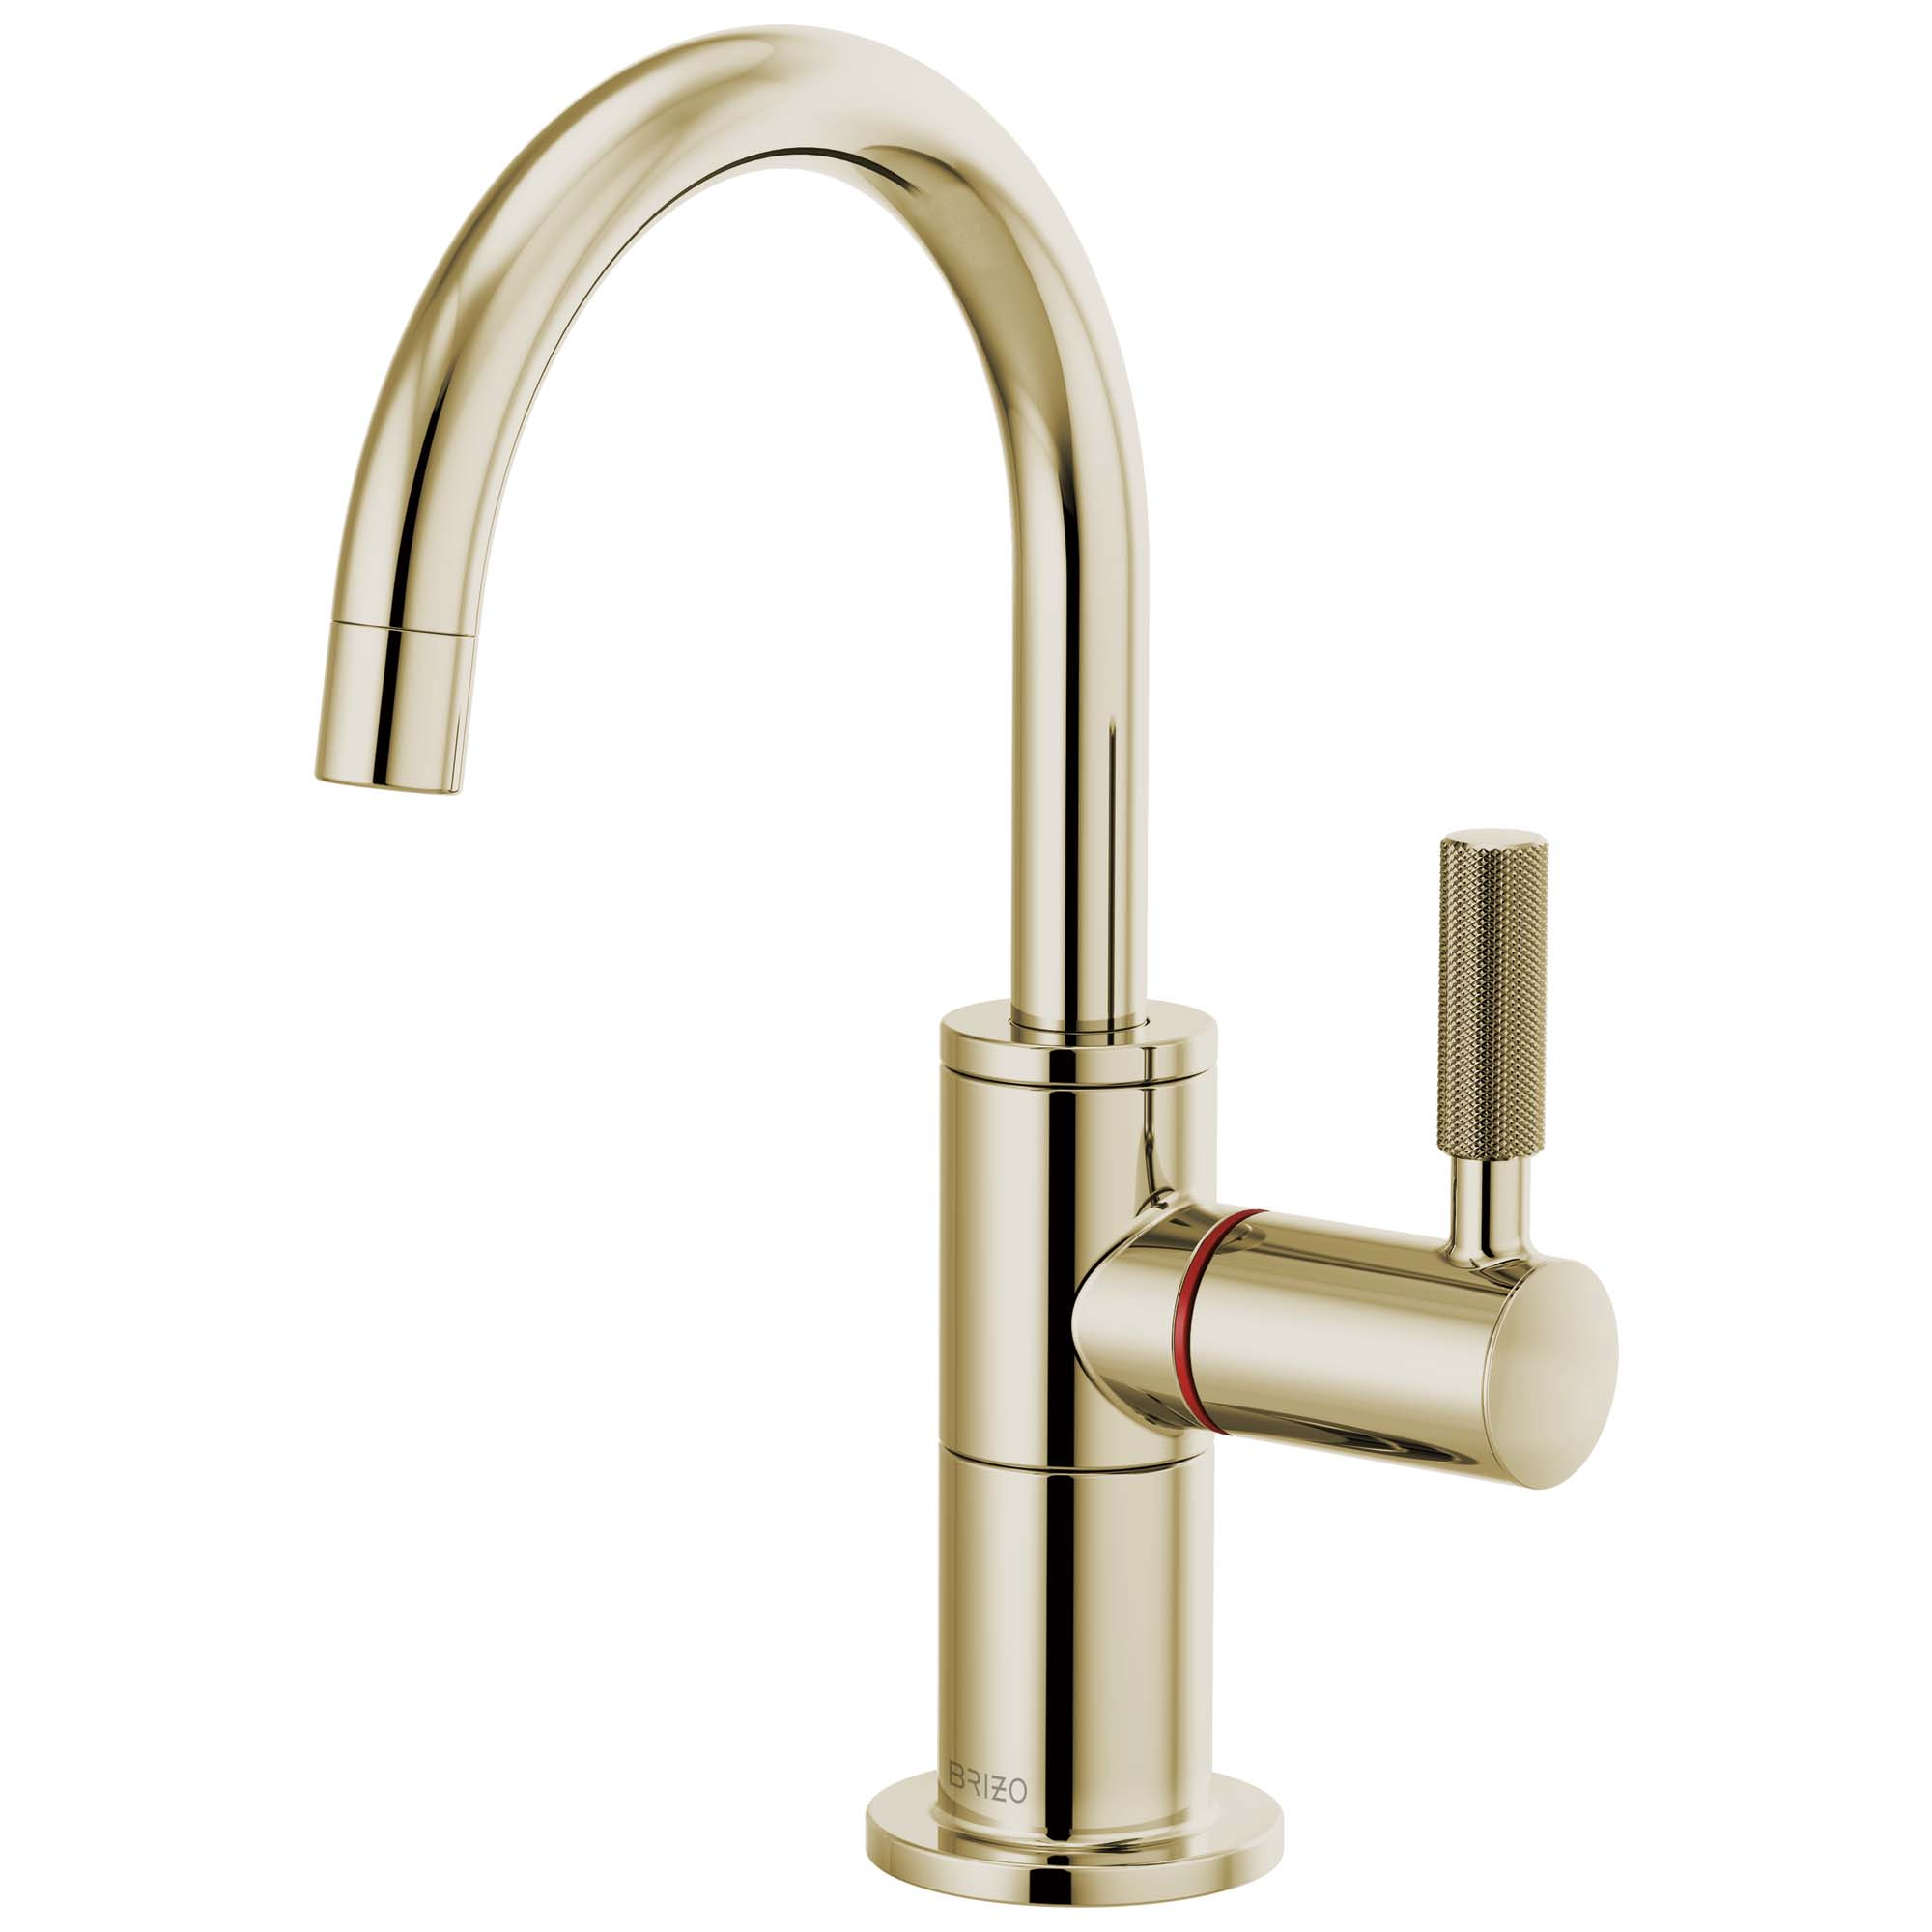 Brizo 61343LF-H-PN Litze Instant Hot Faucet with Arc Spout and Knurled Handle - Polished Nickel